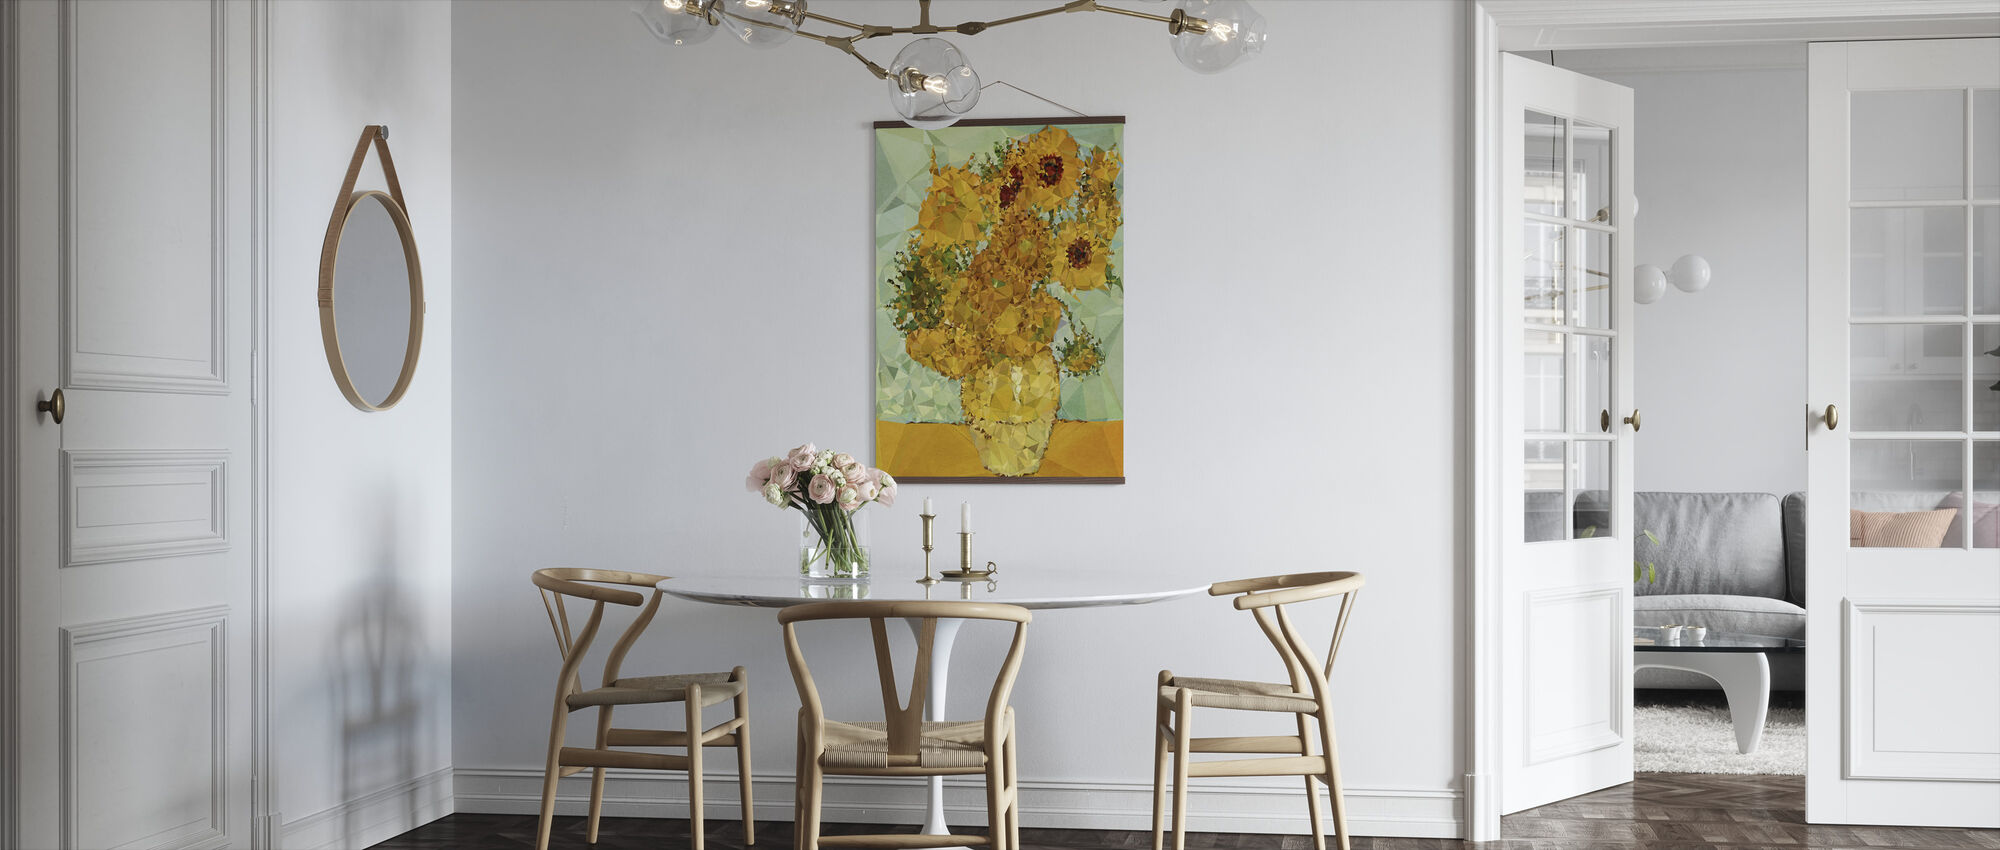 Symphony in Yellow and Blue - Poster - Kitchen